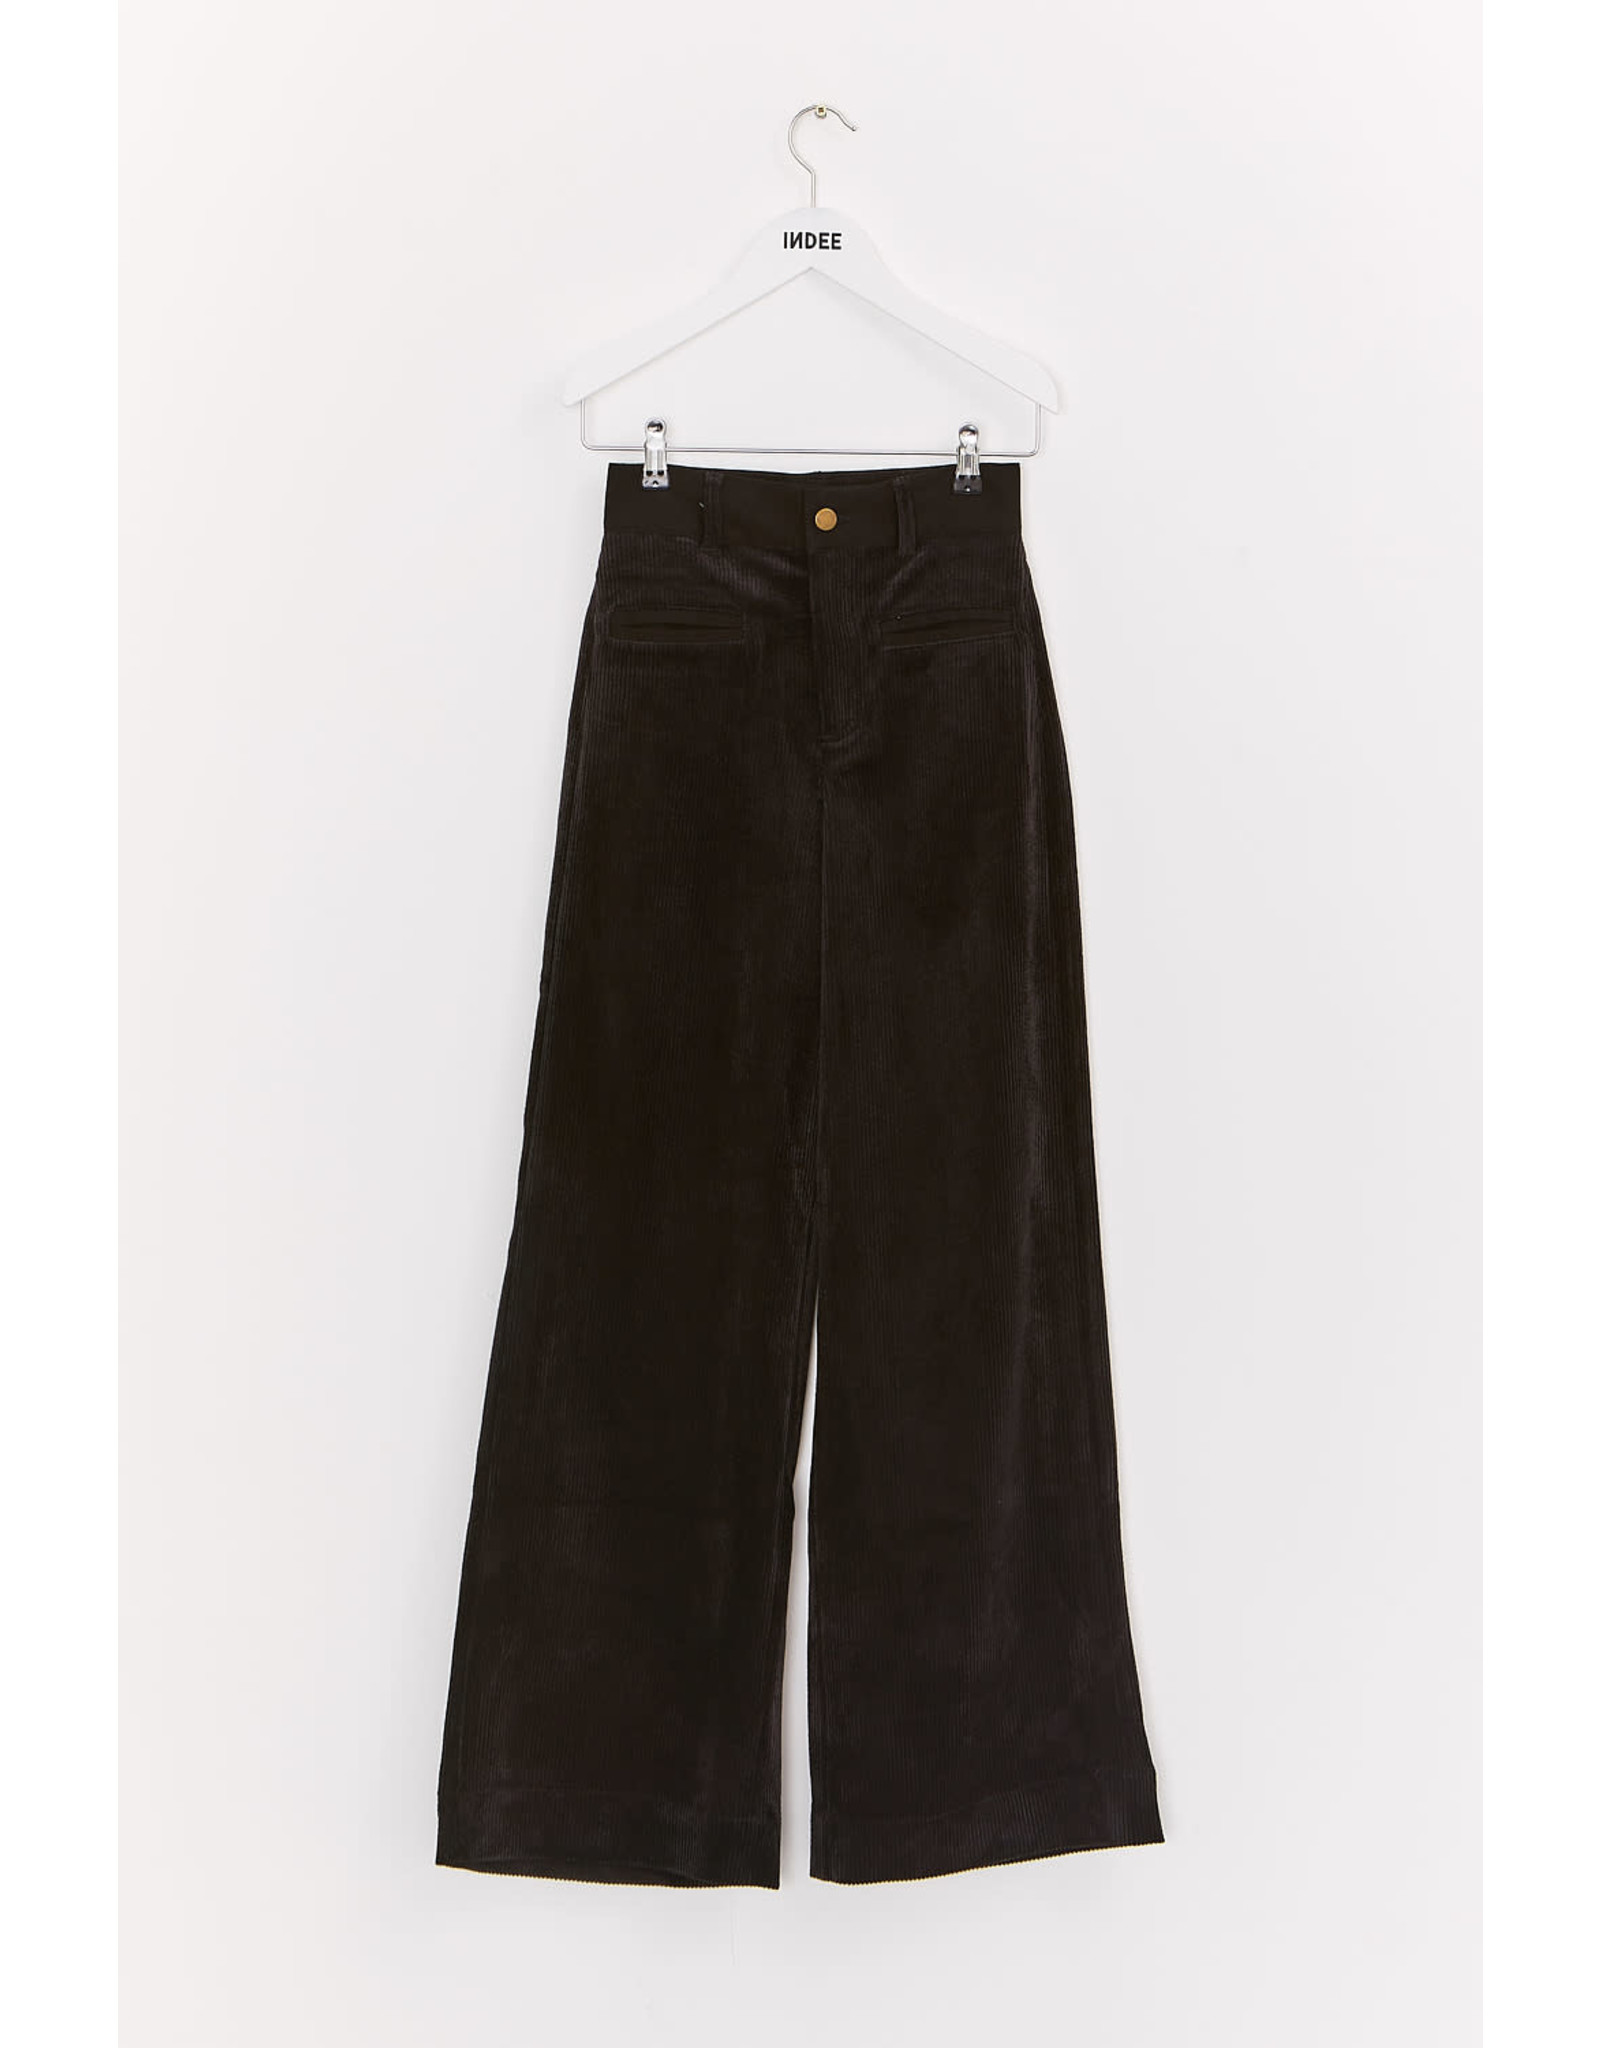 INDEE FW21 Karting trousers